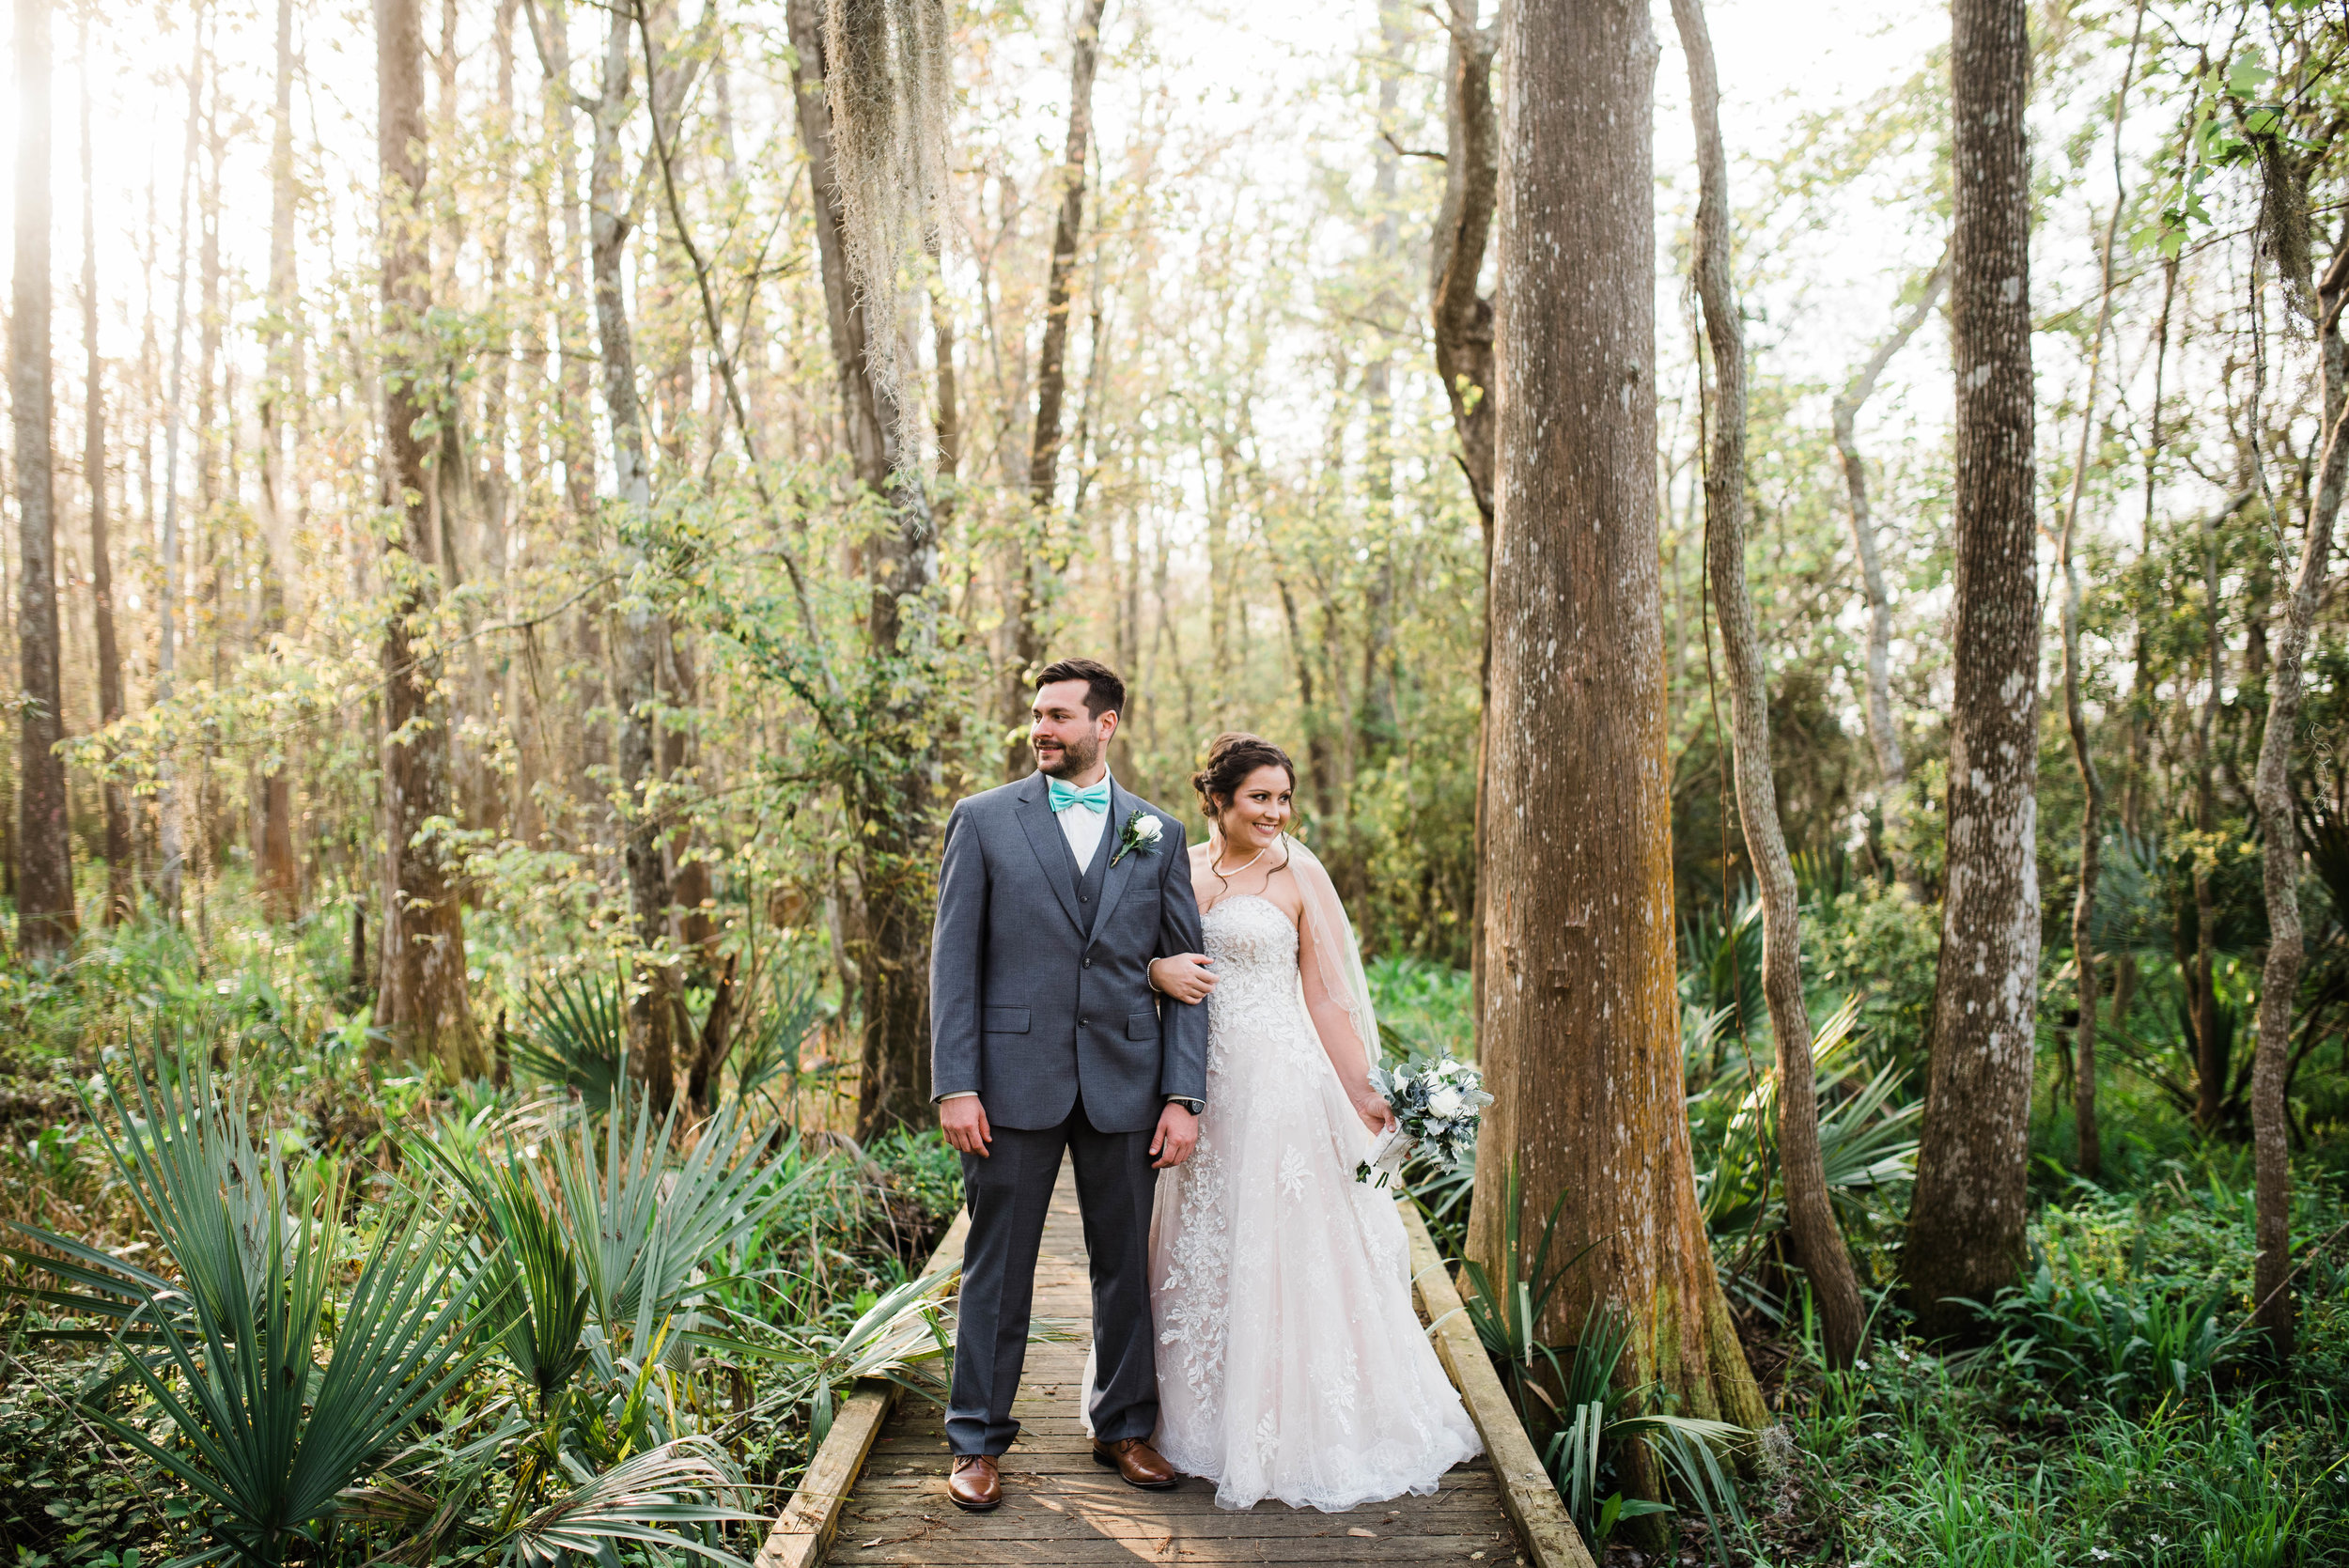 Jennifer + Derek-Fairview-State-Park-Lake-Pontchartrain-Basin-Maritime-Museum-Wedding_Gabby Chapin_Photography_Originals_01099.jpg